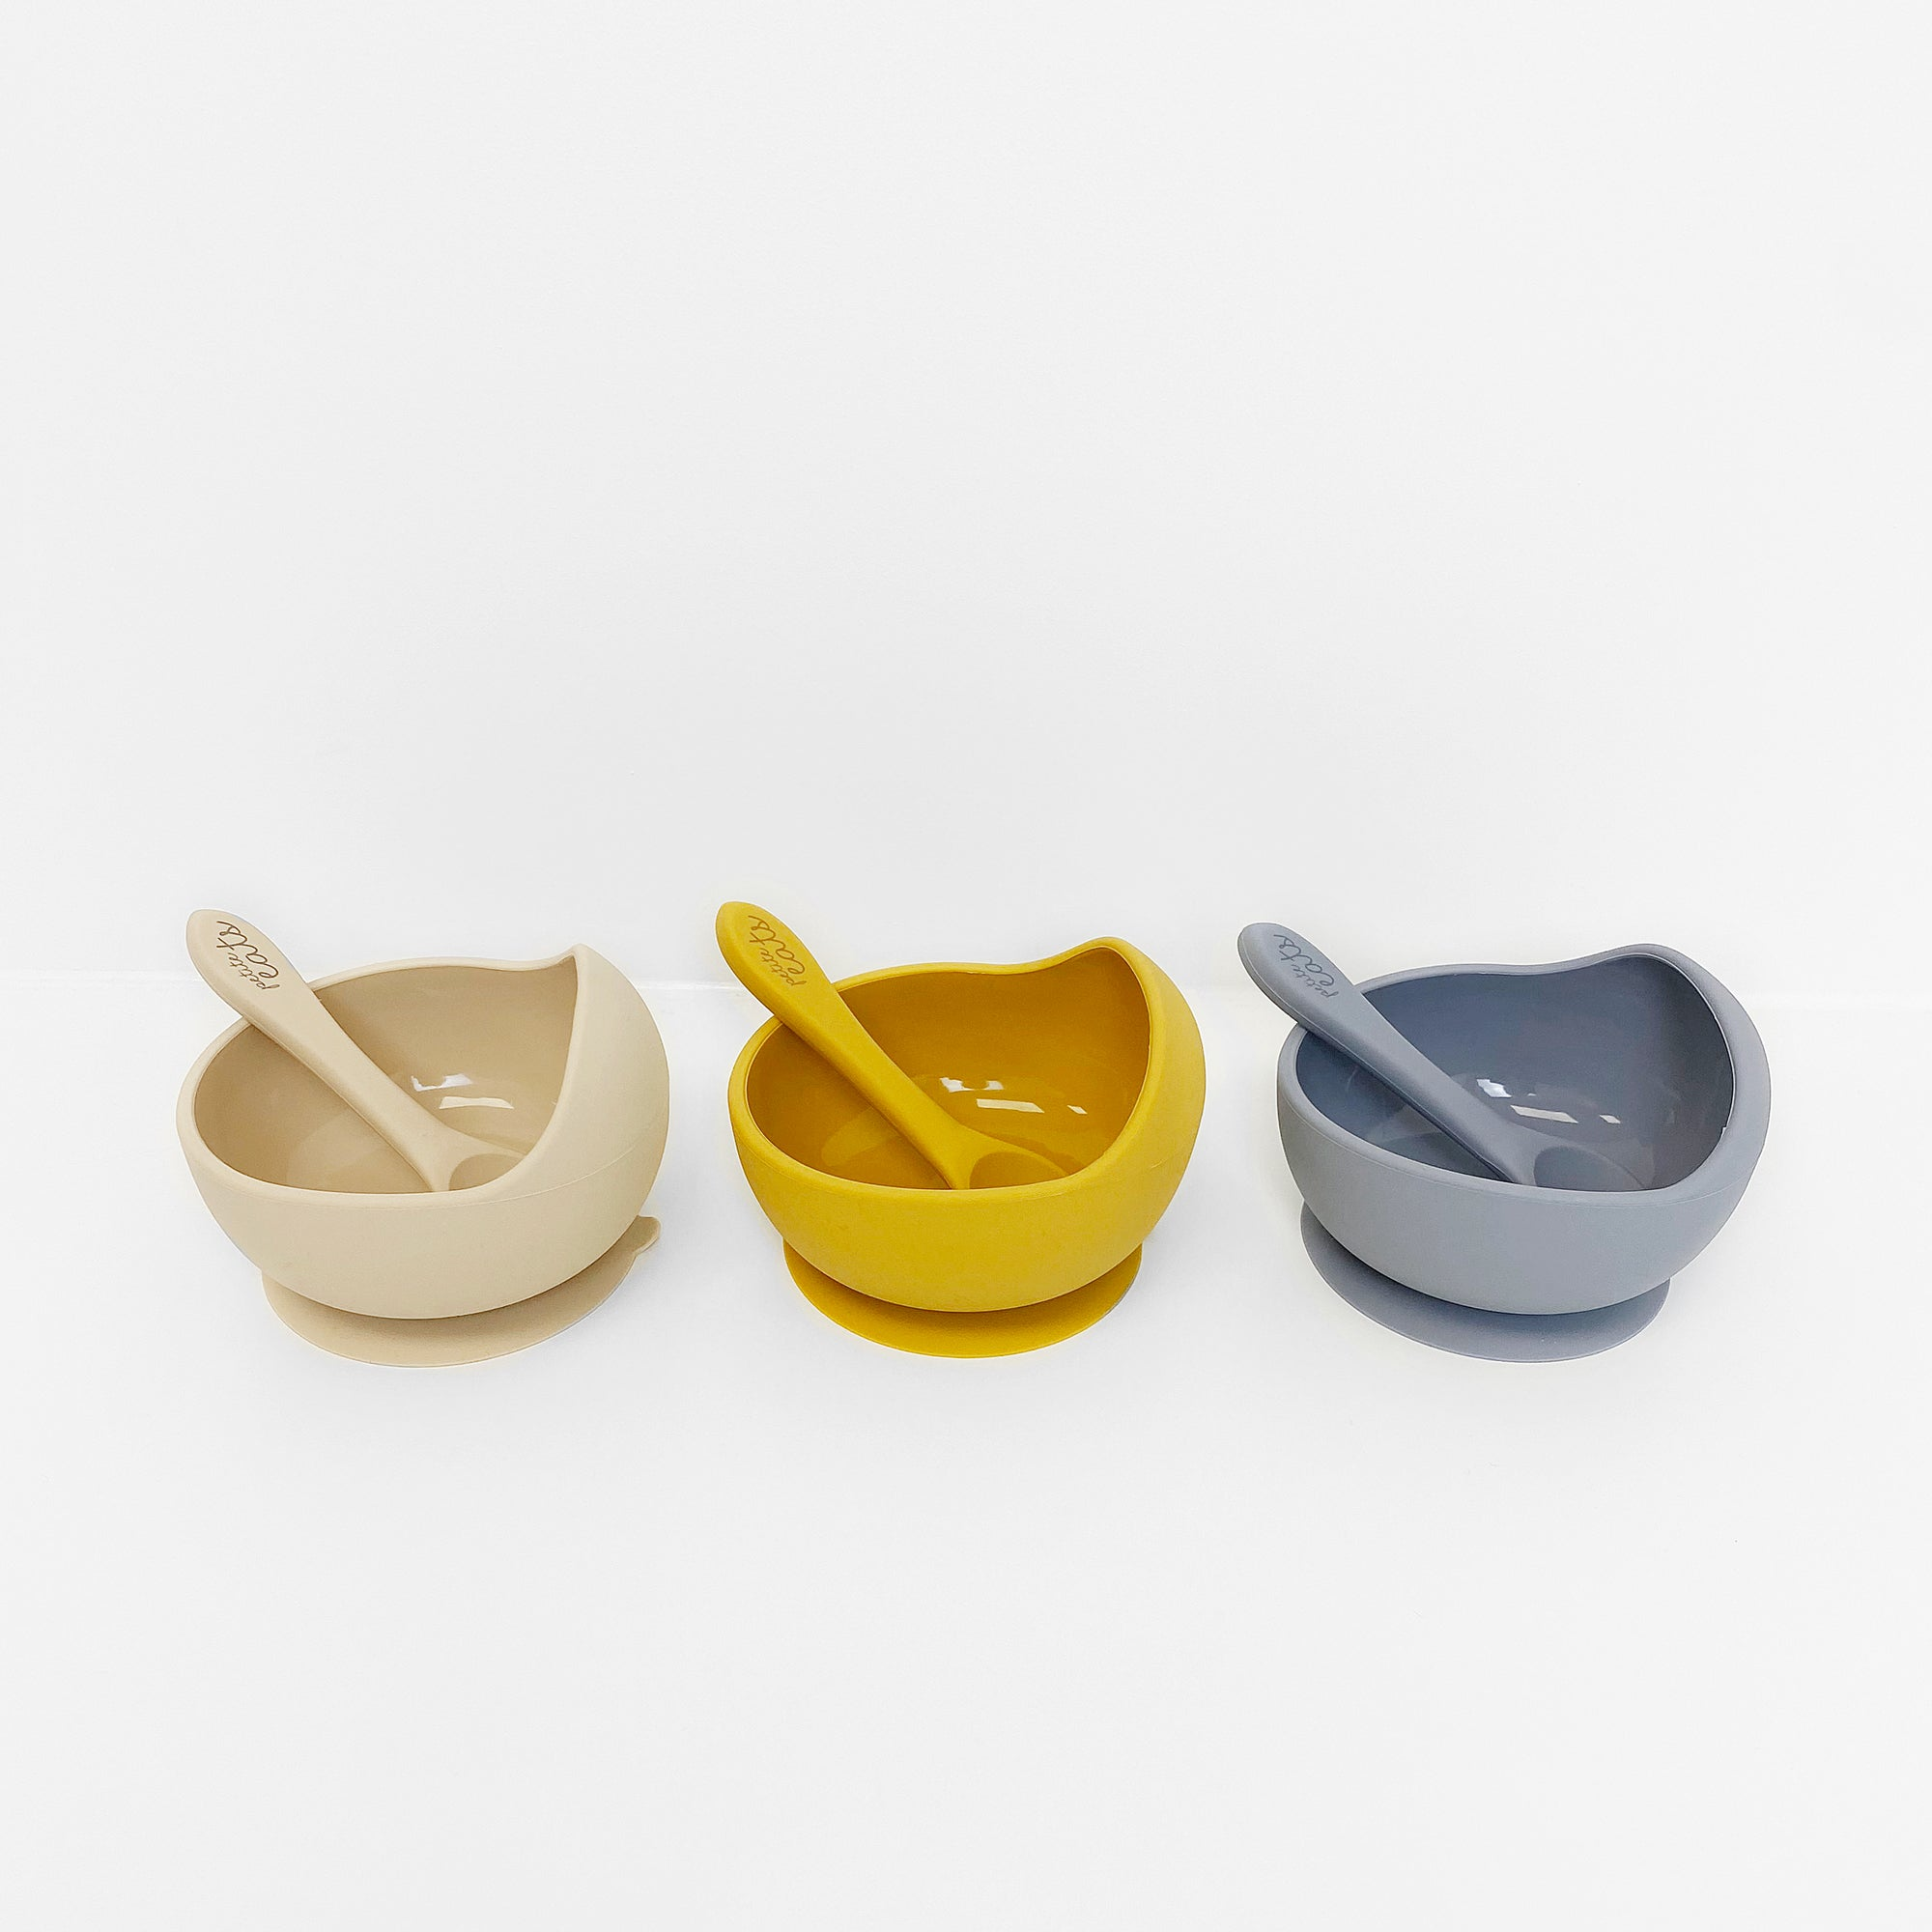 Suction Bowl & Spoon - Grey - Petite Eats - Baby - Paper Plane - Tauranga Stockist